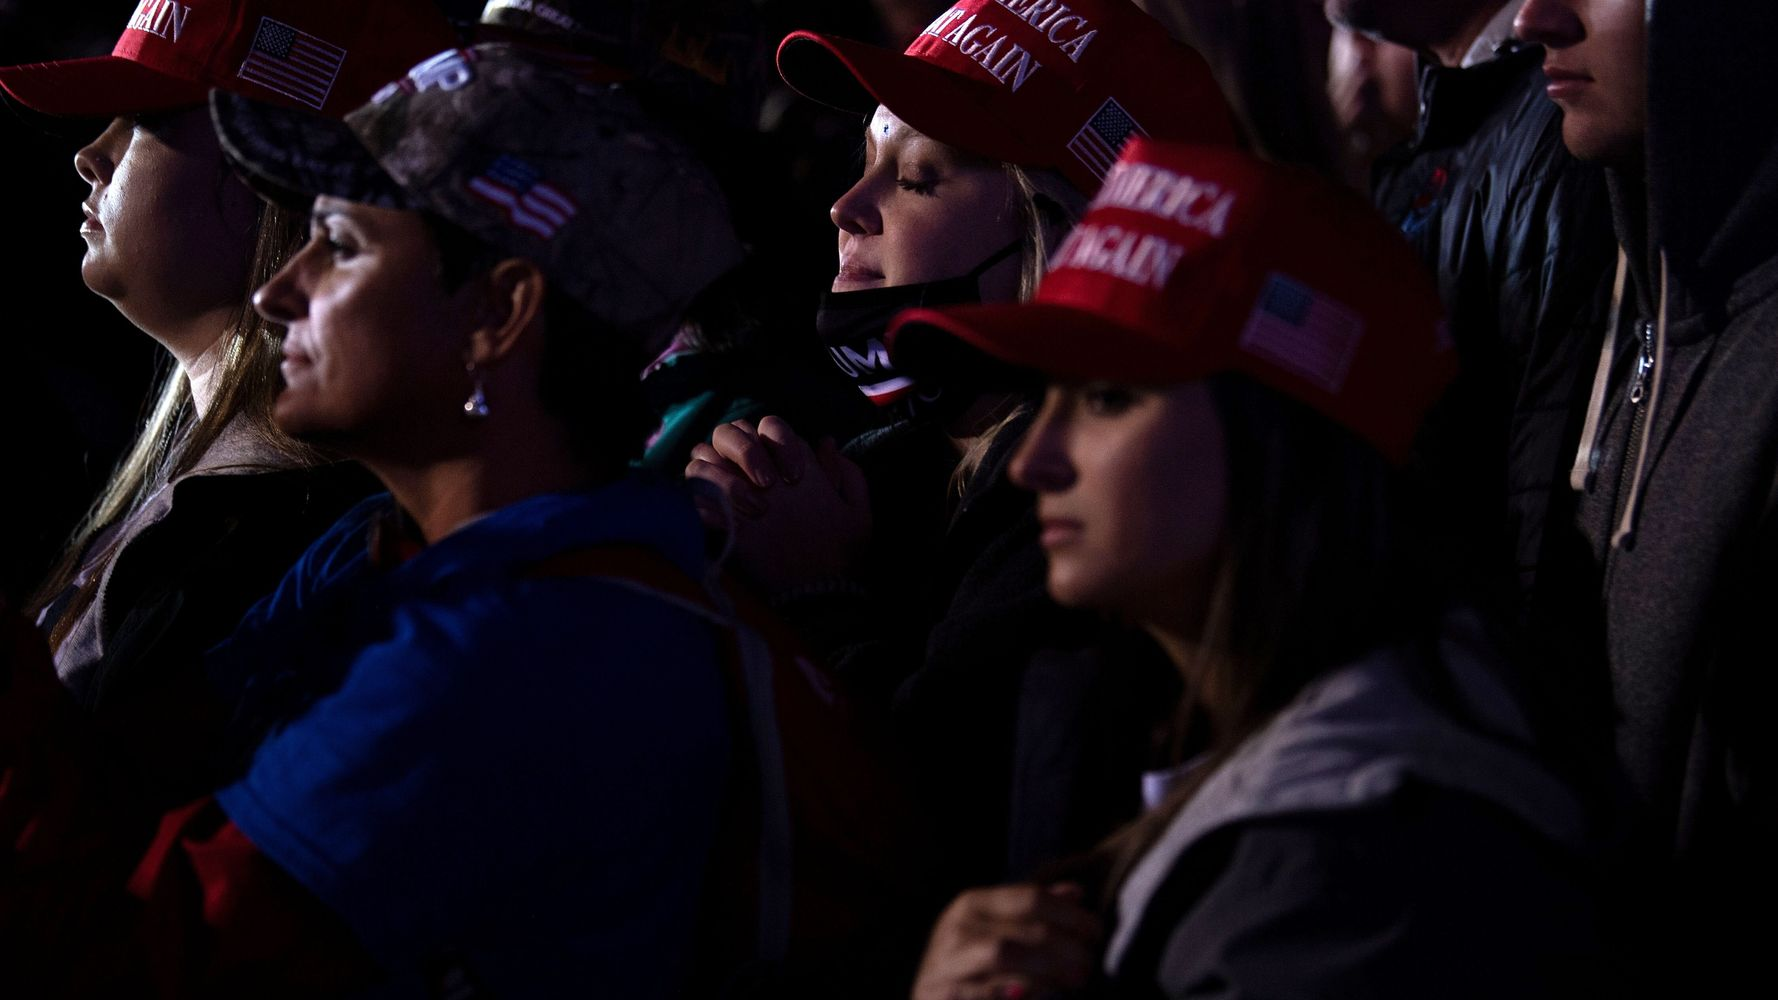 Yet Again, Trump Rally Attendees Stranded On-Site For Hours After Trump Leaves